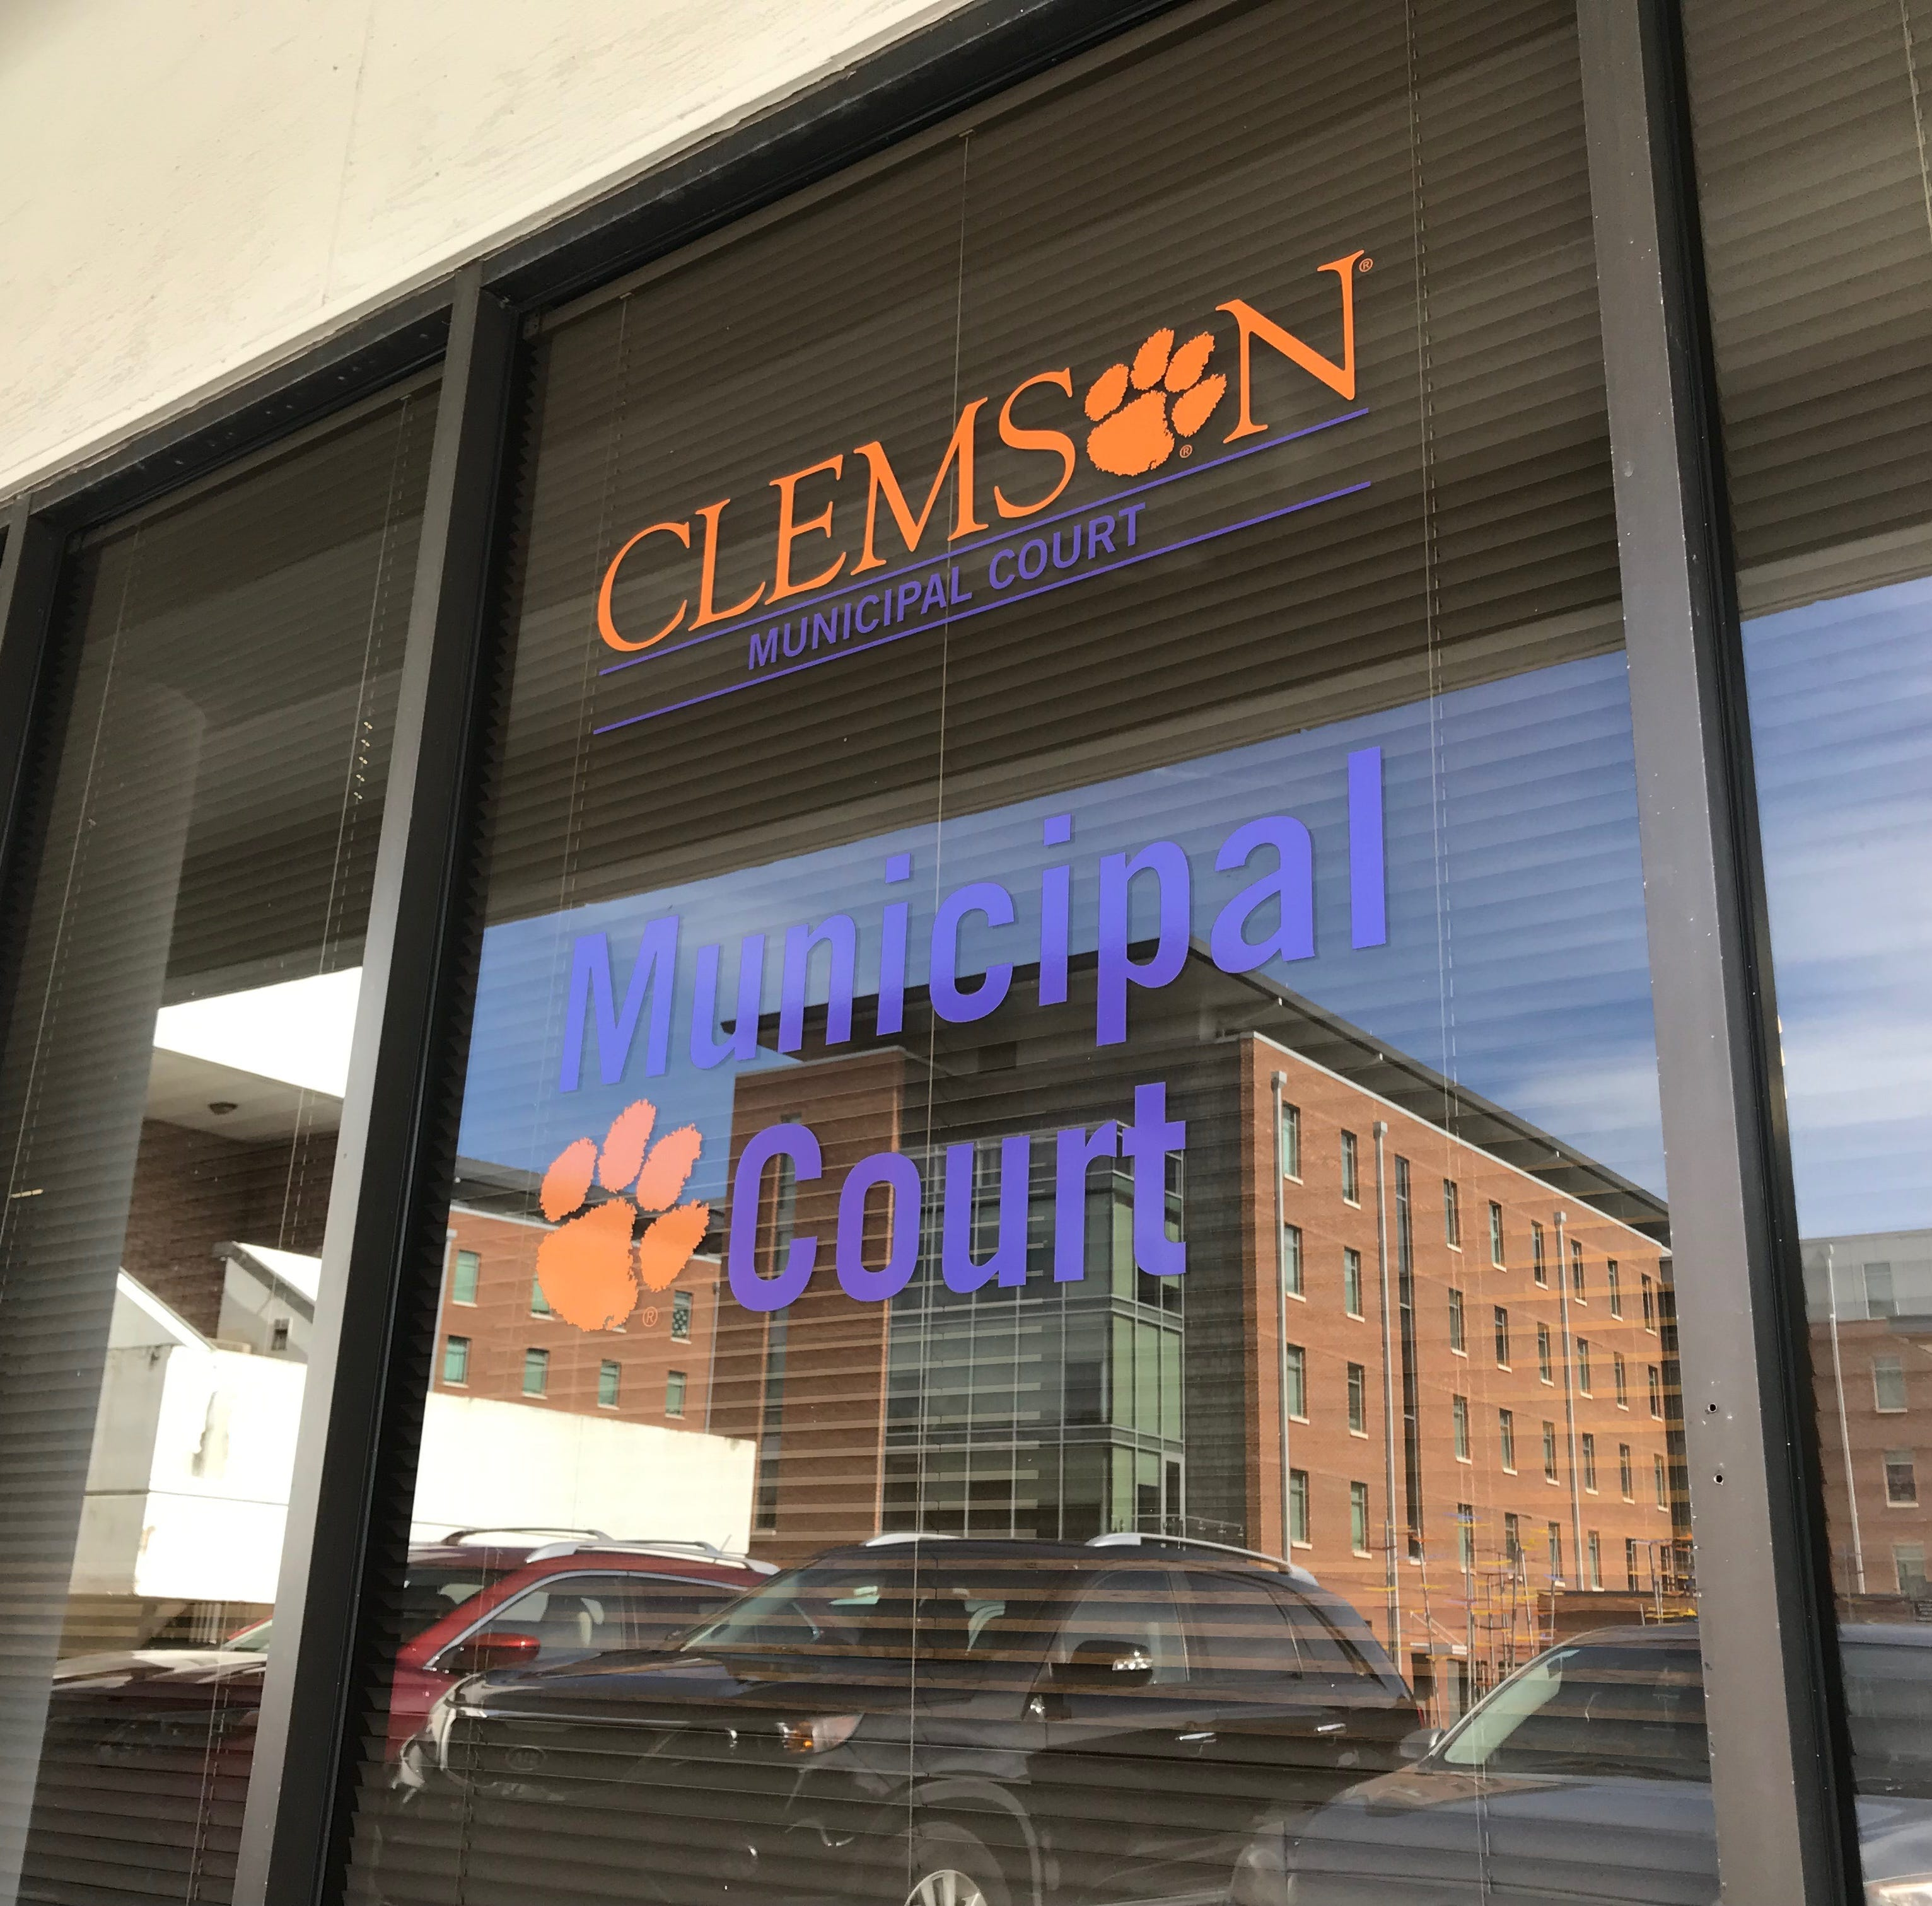 Clemson parent charged after cooler taken from Goodwill bin, police say